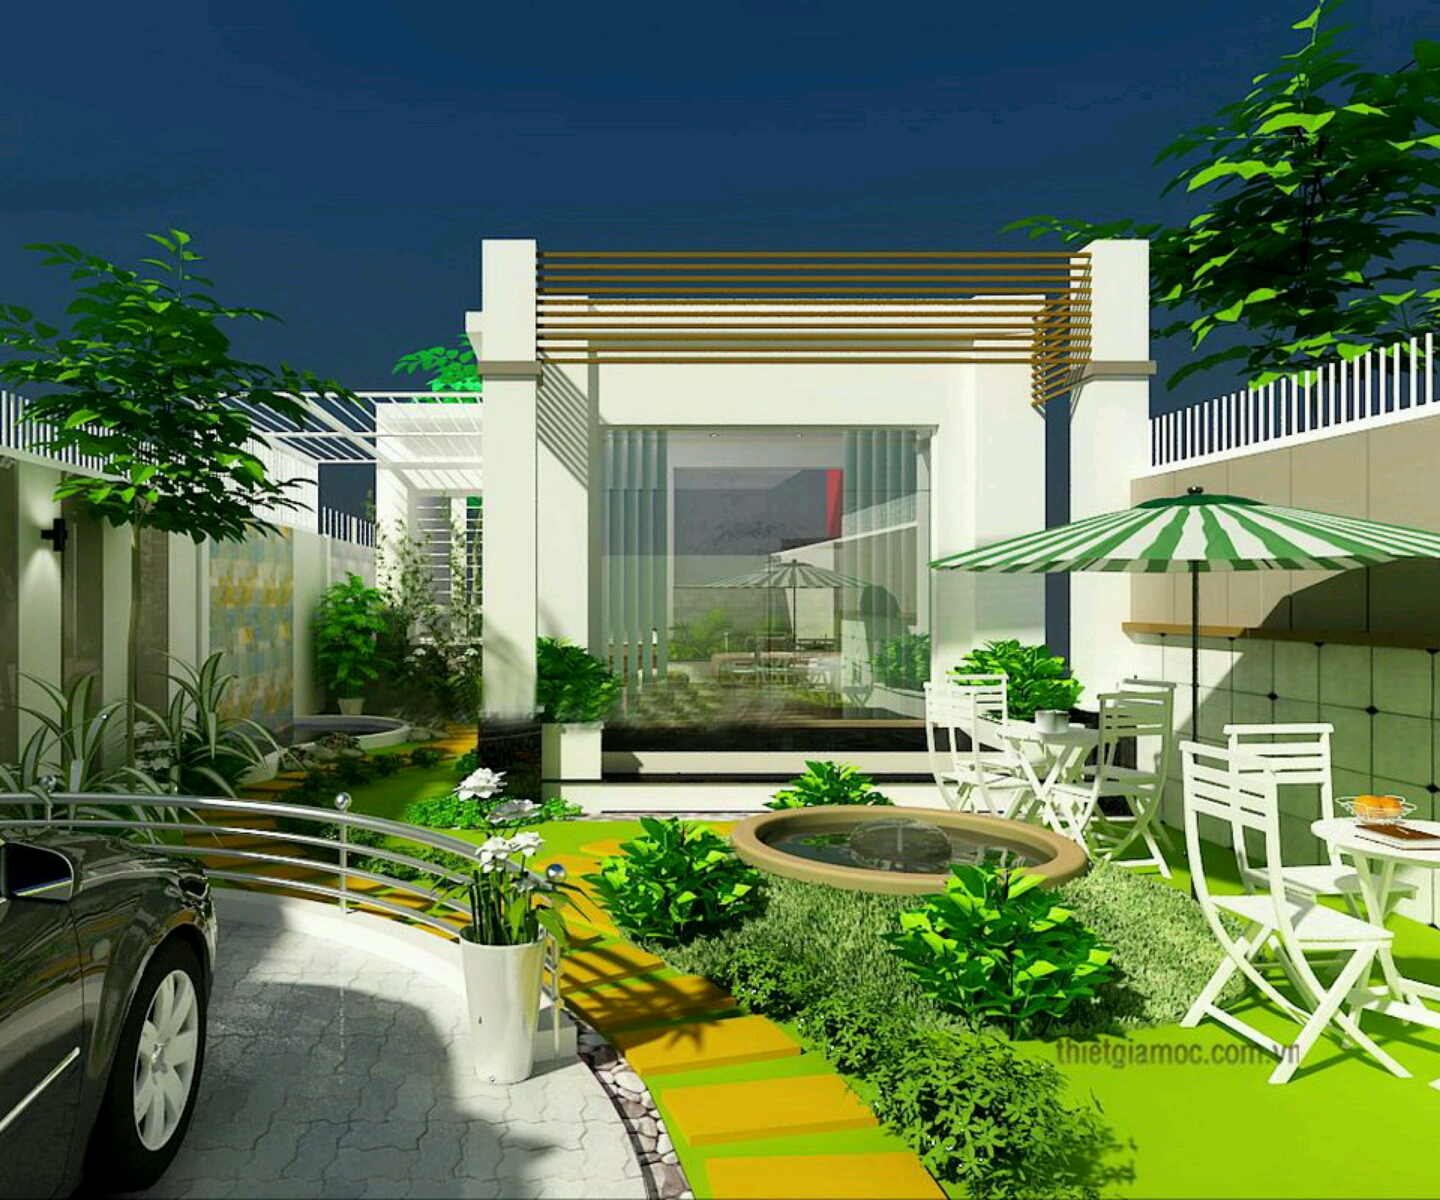 modern homes beautiful garden designs ideas - Home And Garden Designs